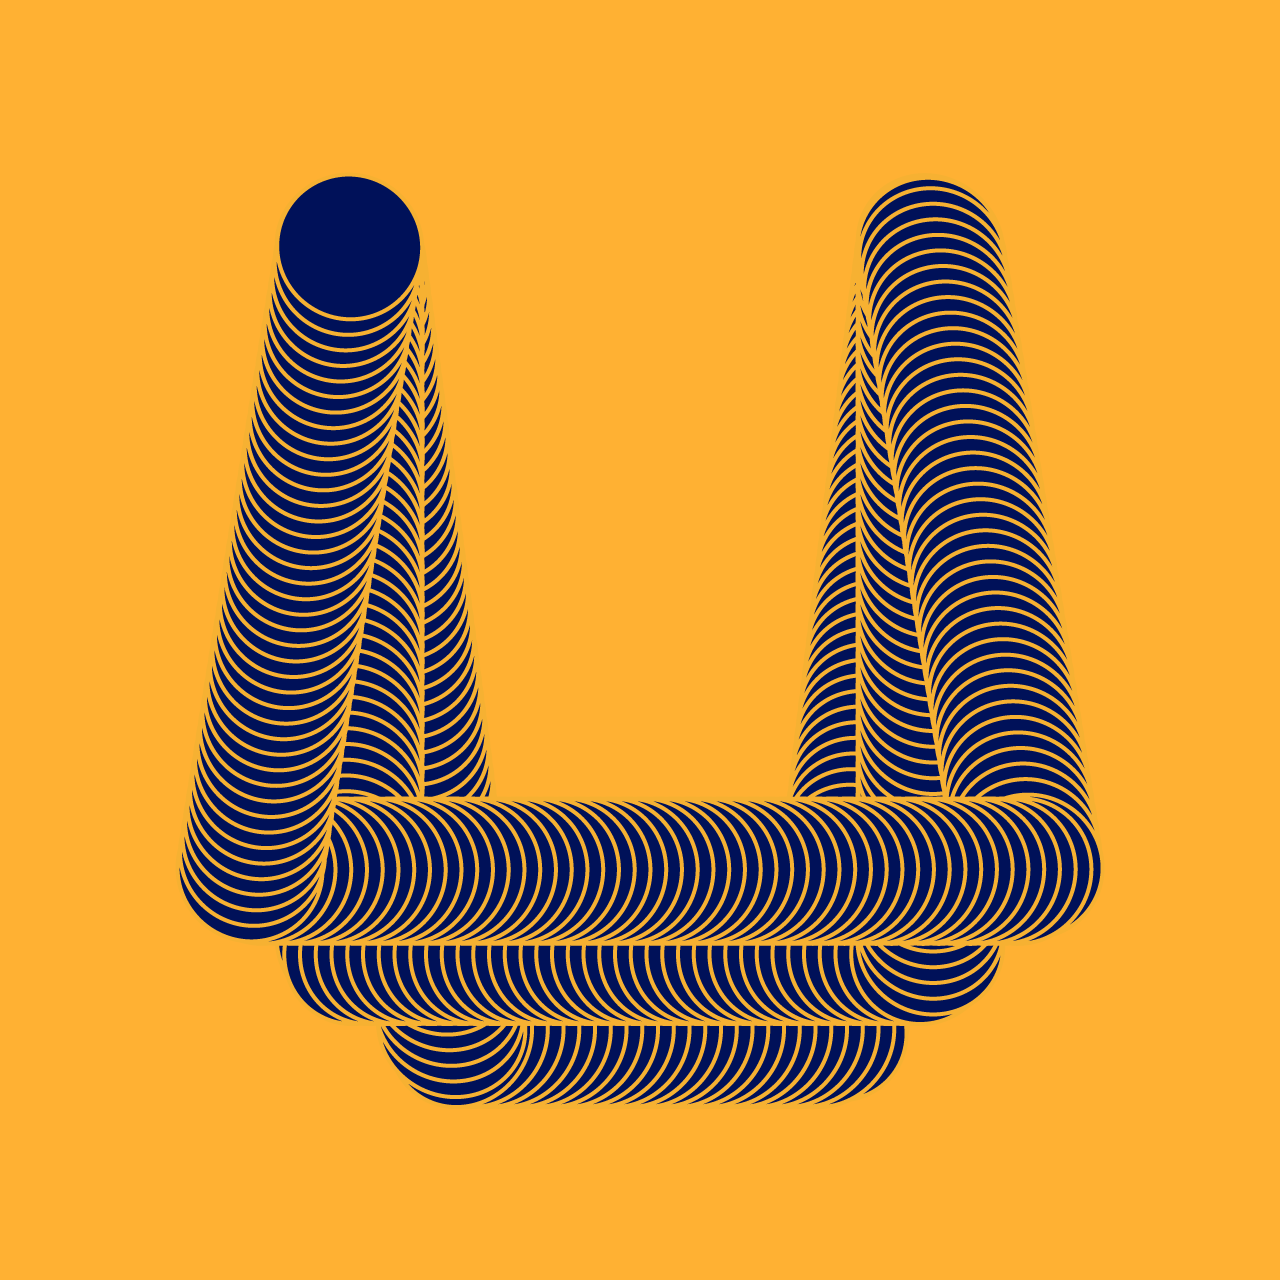 My U submission for 36 Days of Type